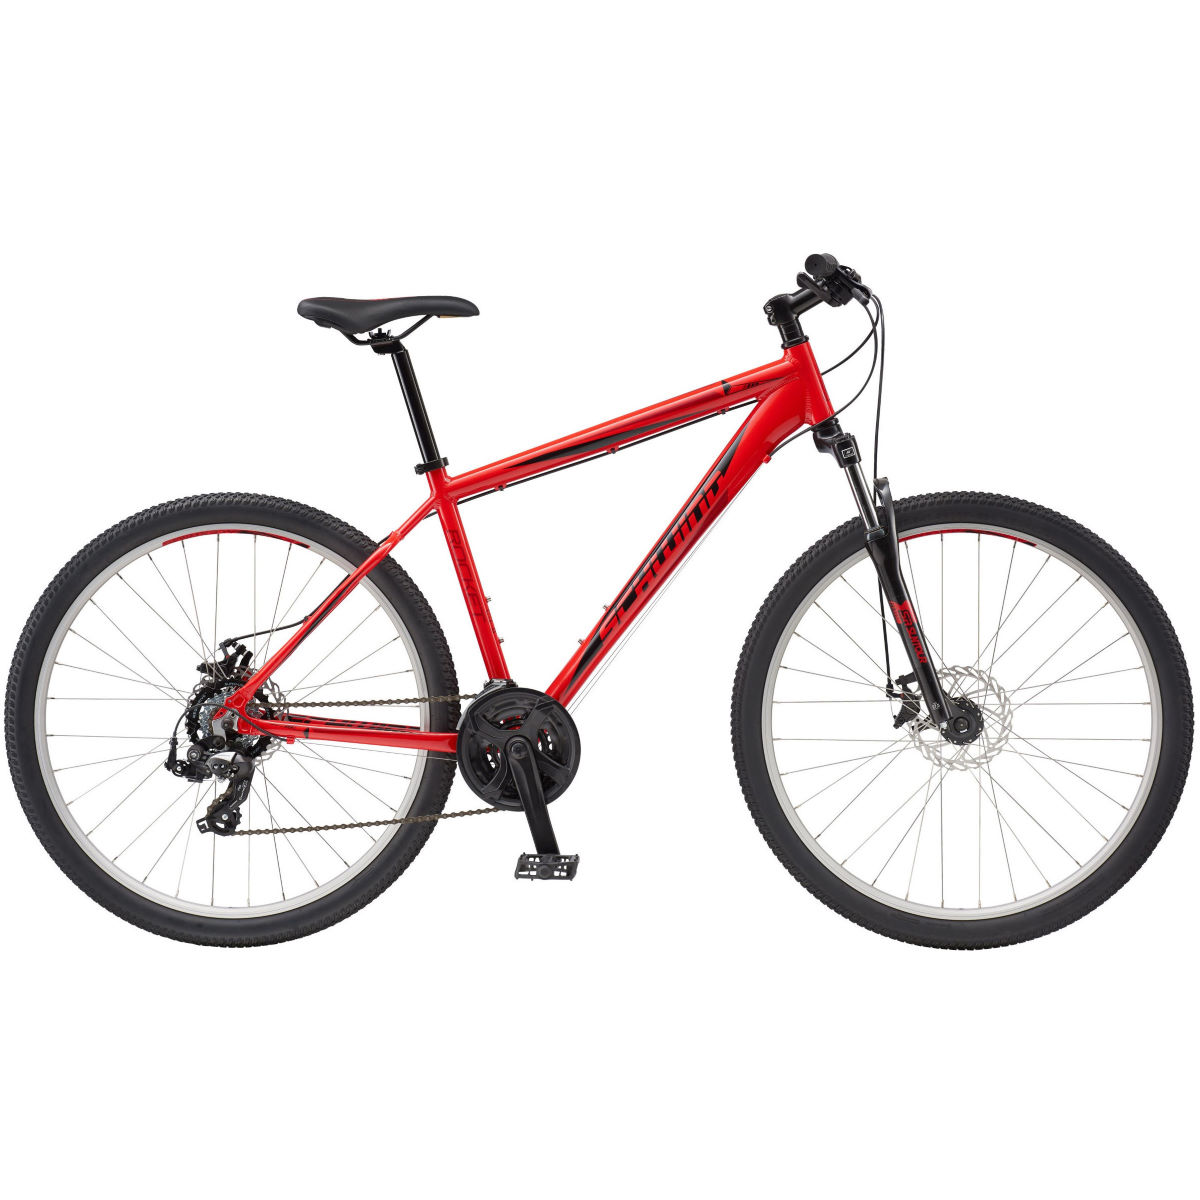 VTT Schwinn Rocket 5 (2016) - XL Rouge VTT semi-rigides